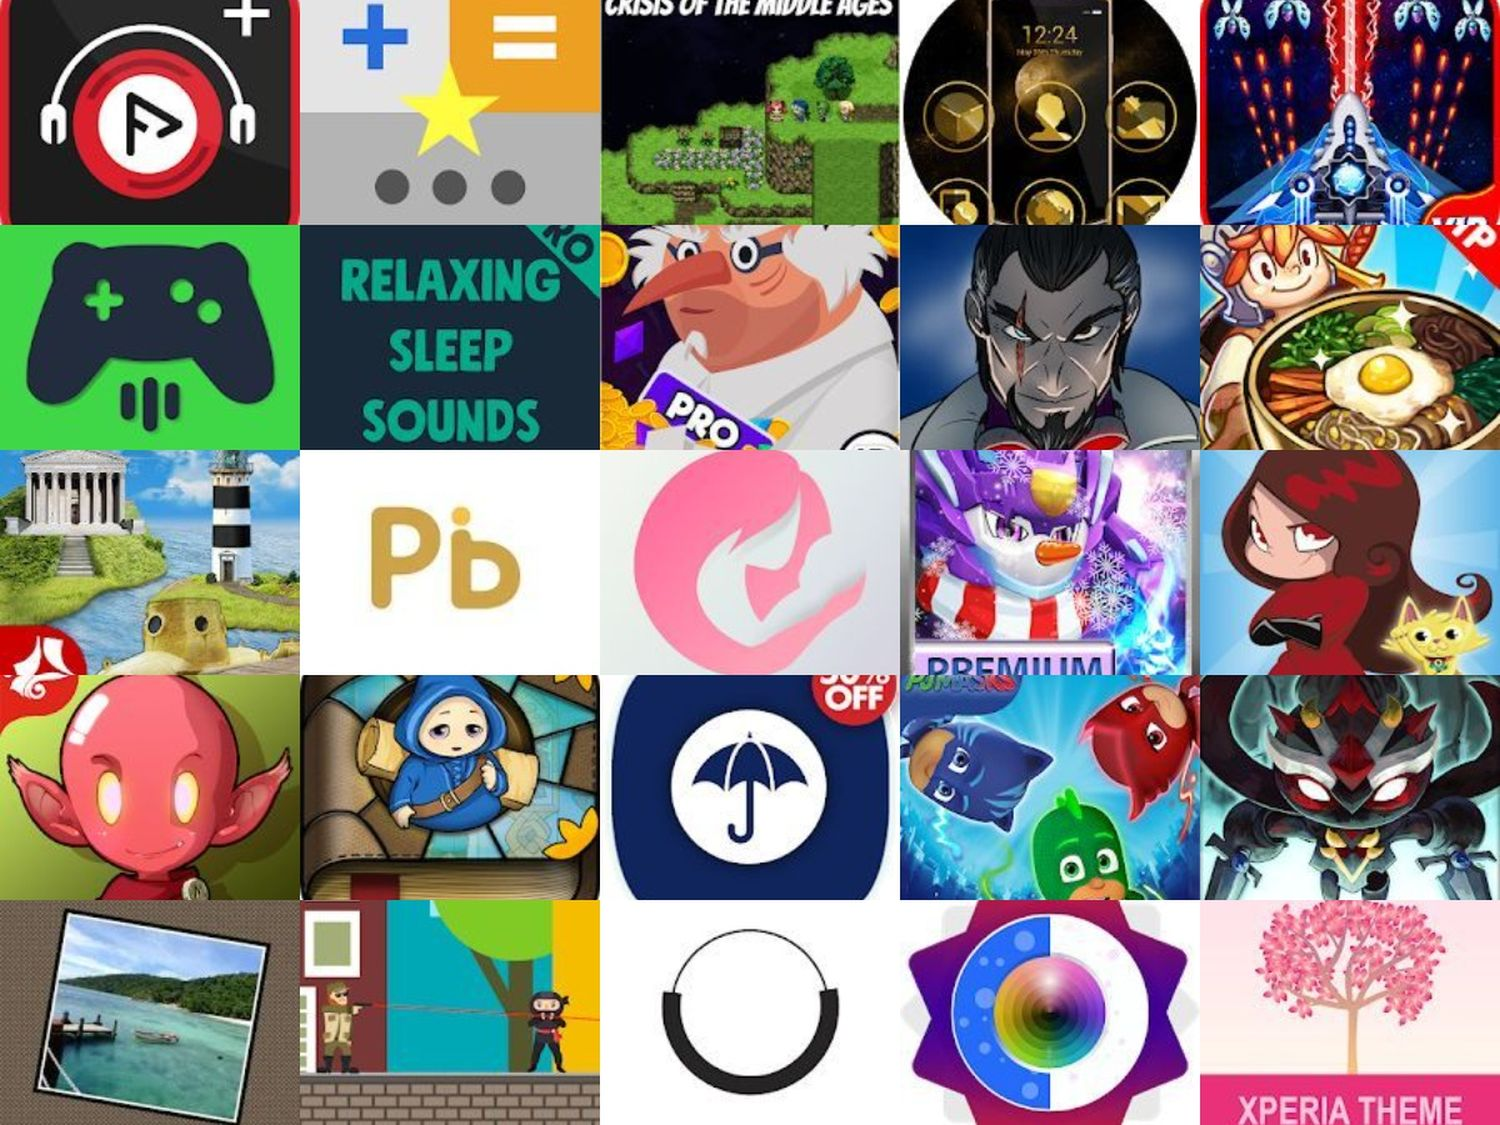 apps 16.06.2020